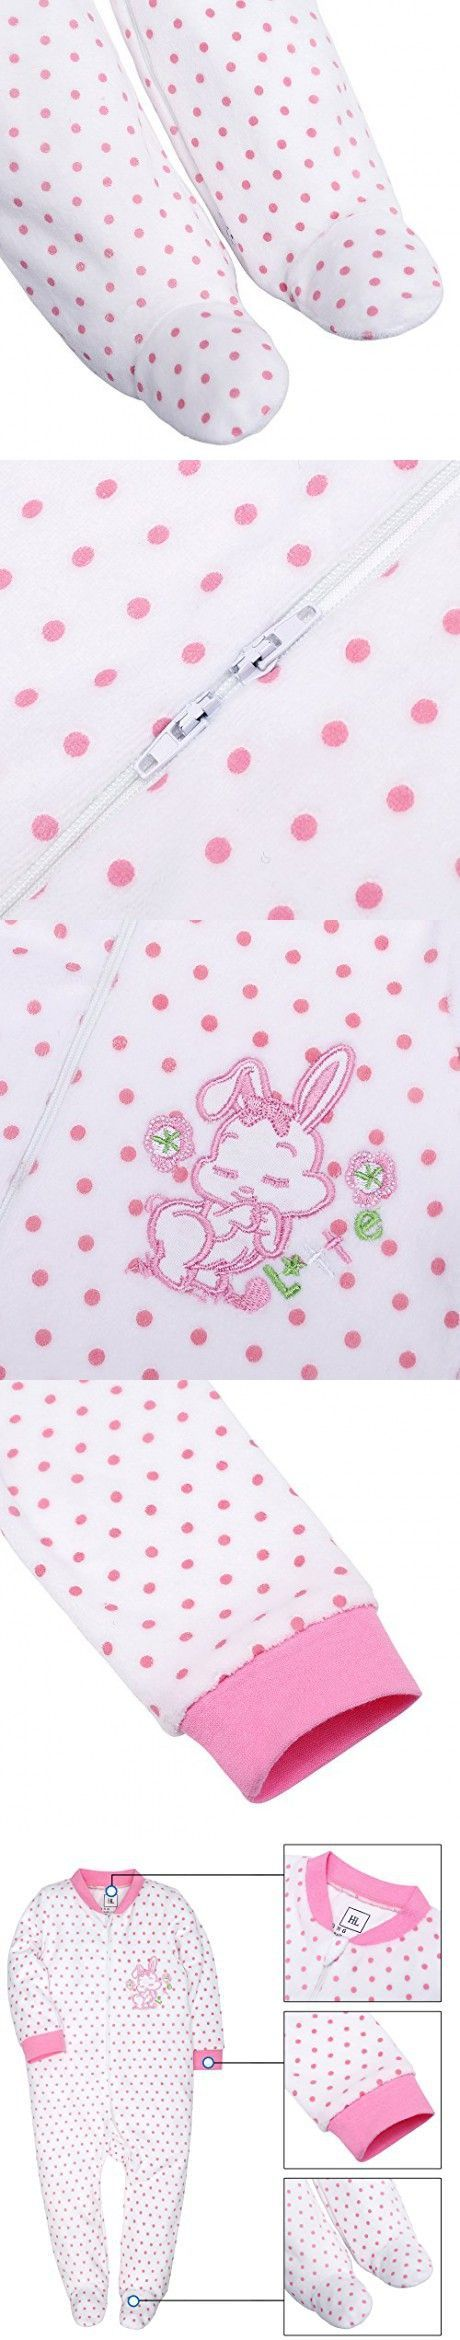 SHENGWEN Baby Boy Girl Pajamas Blanket Sleeper 100% Cotton Footed Sleep and Play Rabbit240g #babyBlanketSleeper